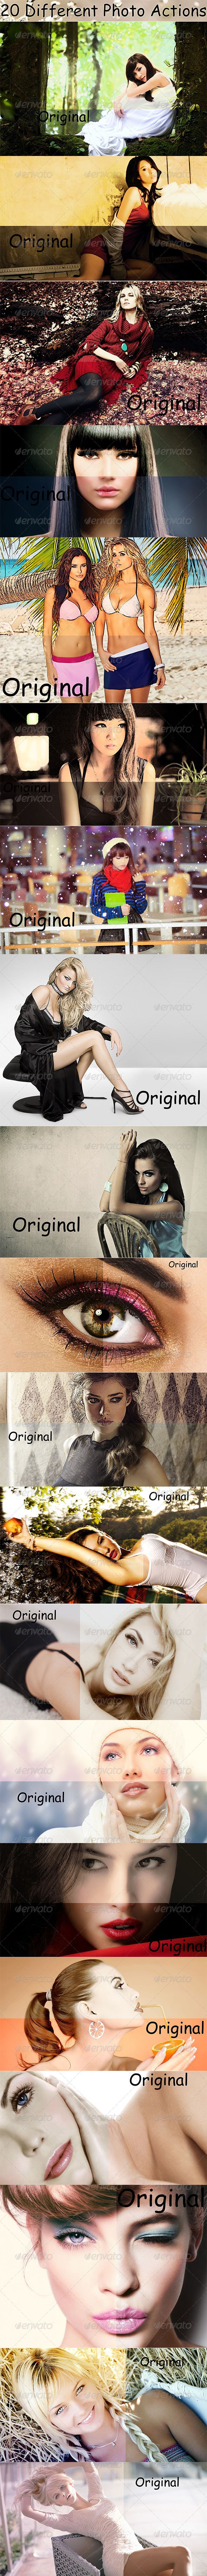 GraphicRiver 20 Different Photo Actions 8563129